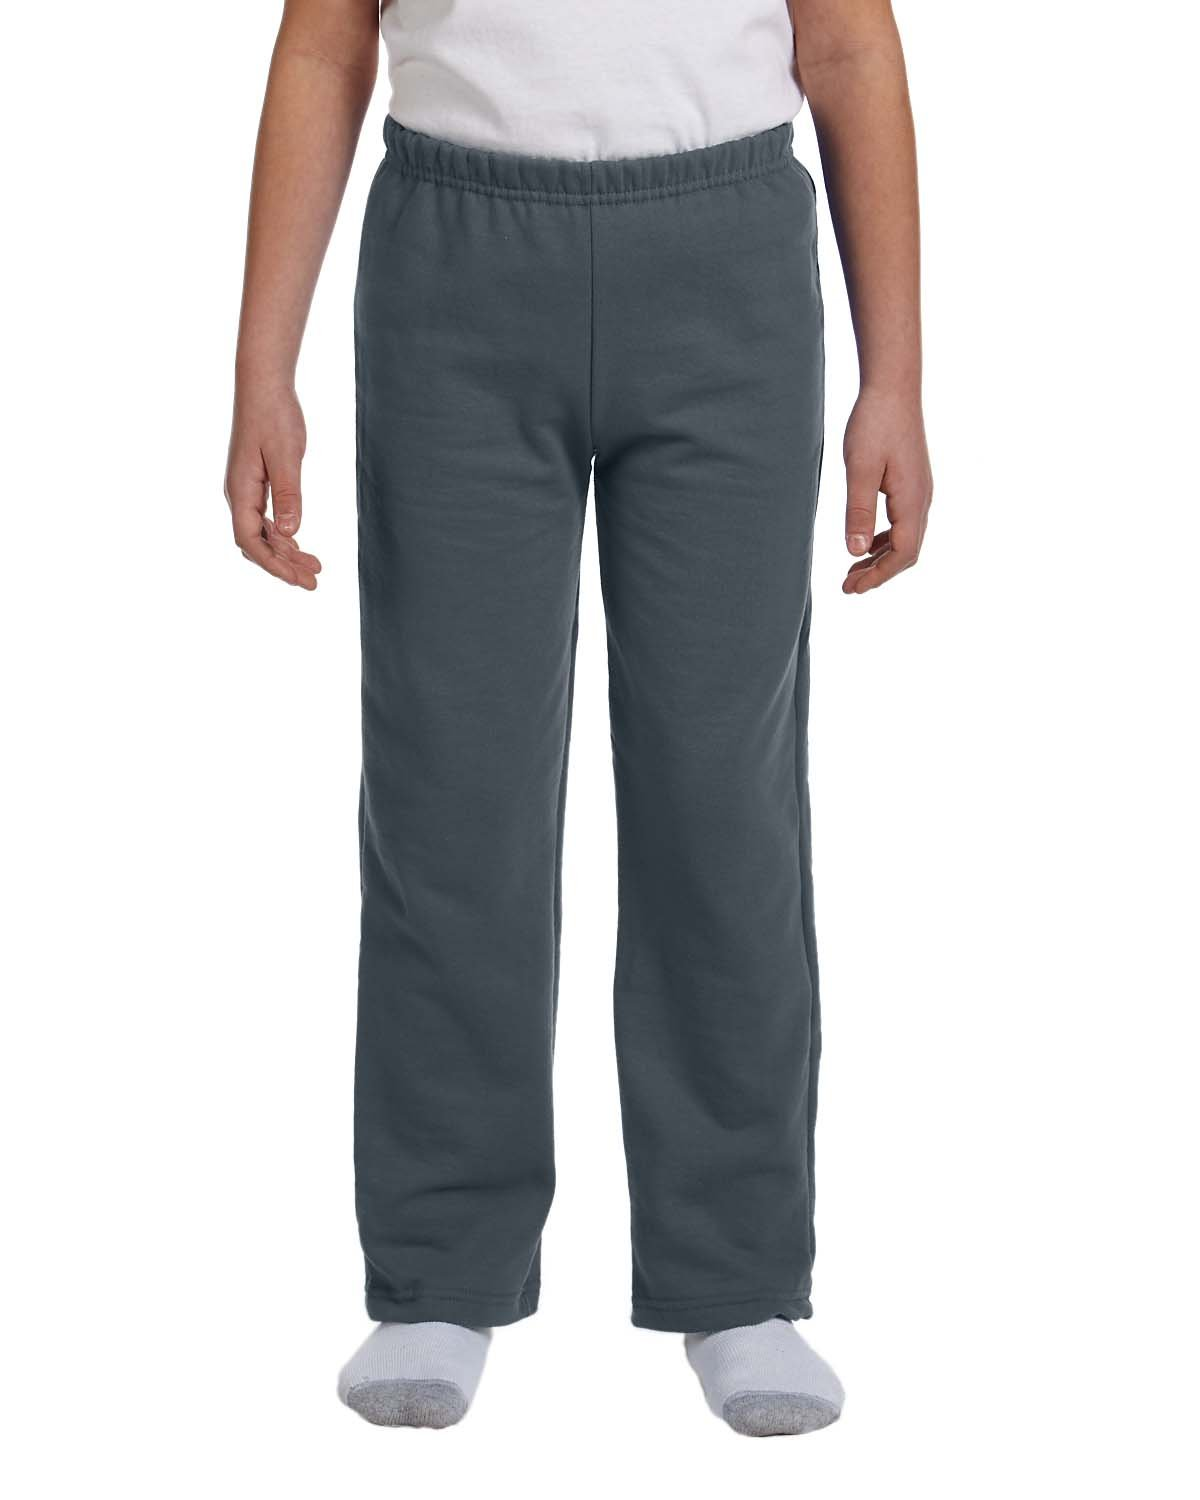 Gildan Boys 7.75 Oz. Heavy Blend 50/50 Sweatpants (G184B) -Dark Heath -S-12PK